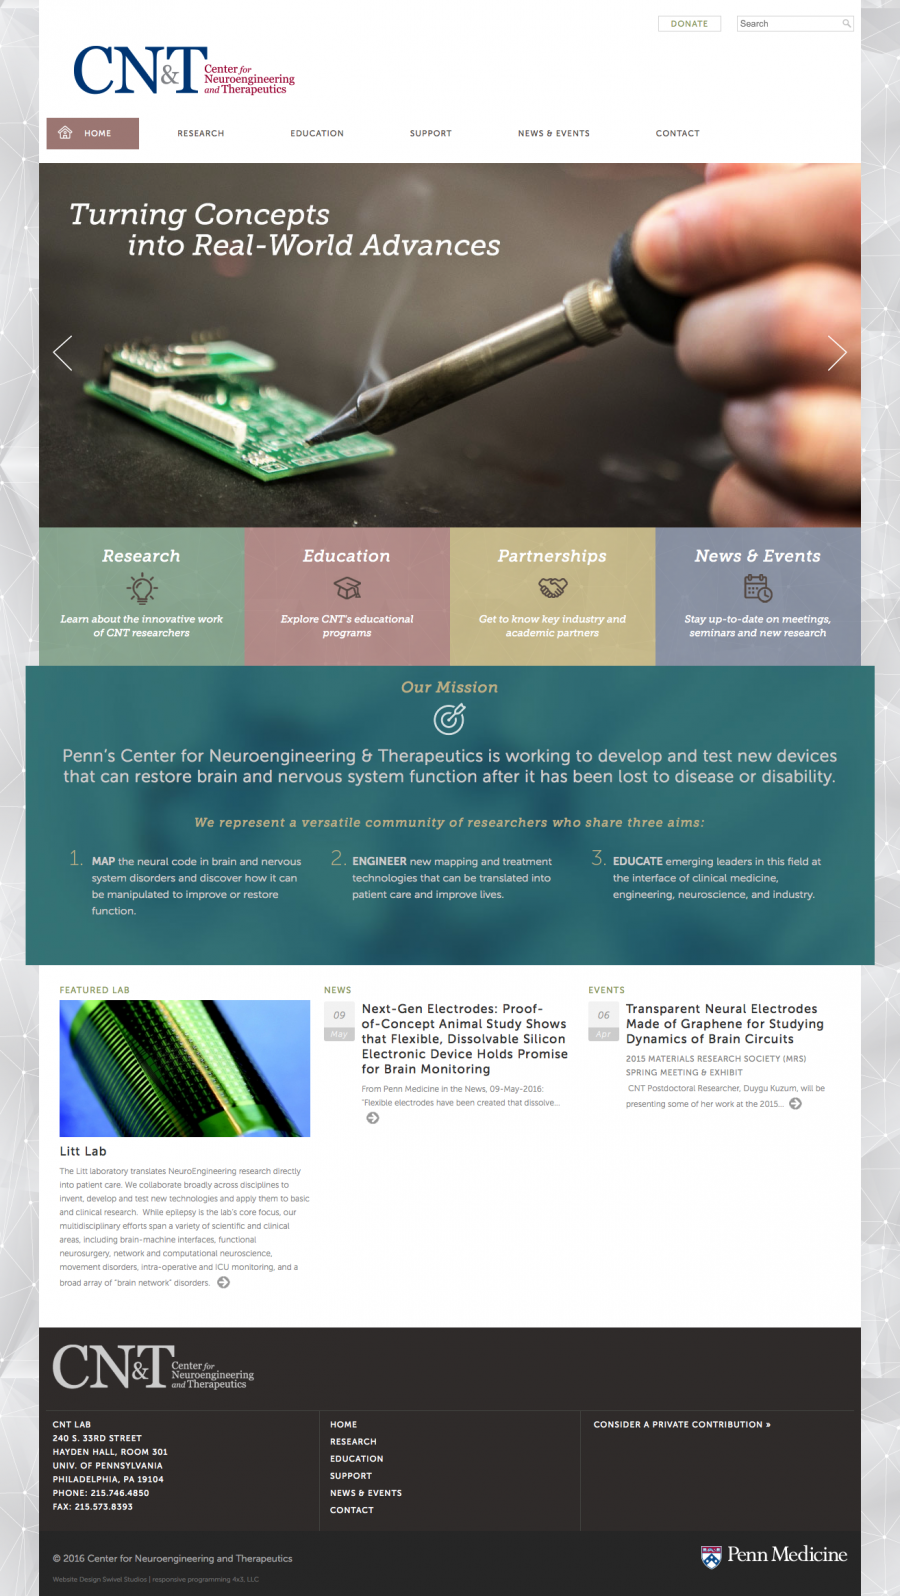 Center for Neuroengineering and Therapeutics Home Page